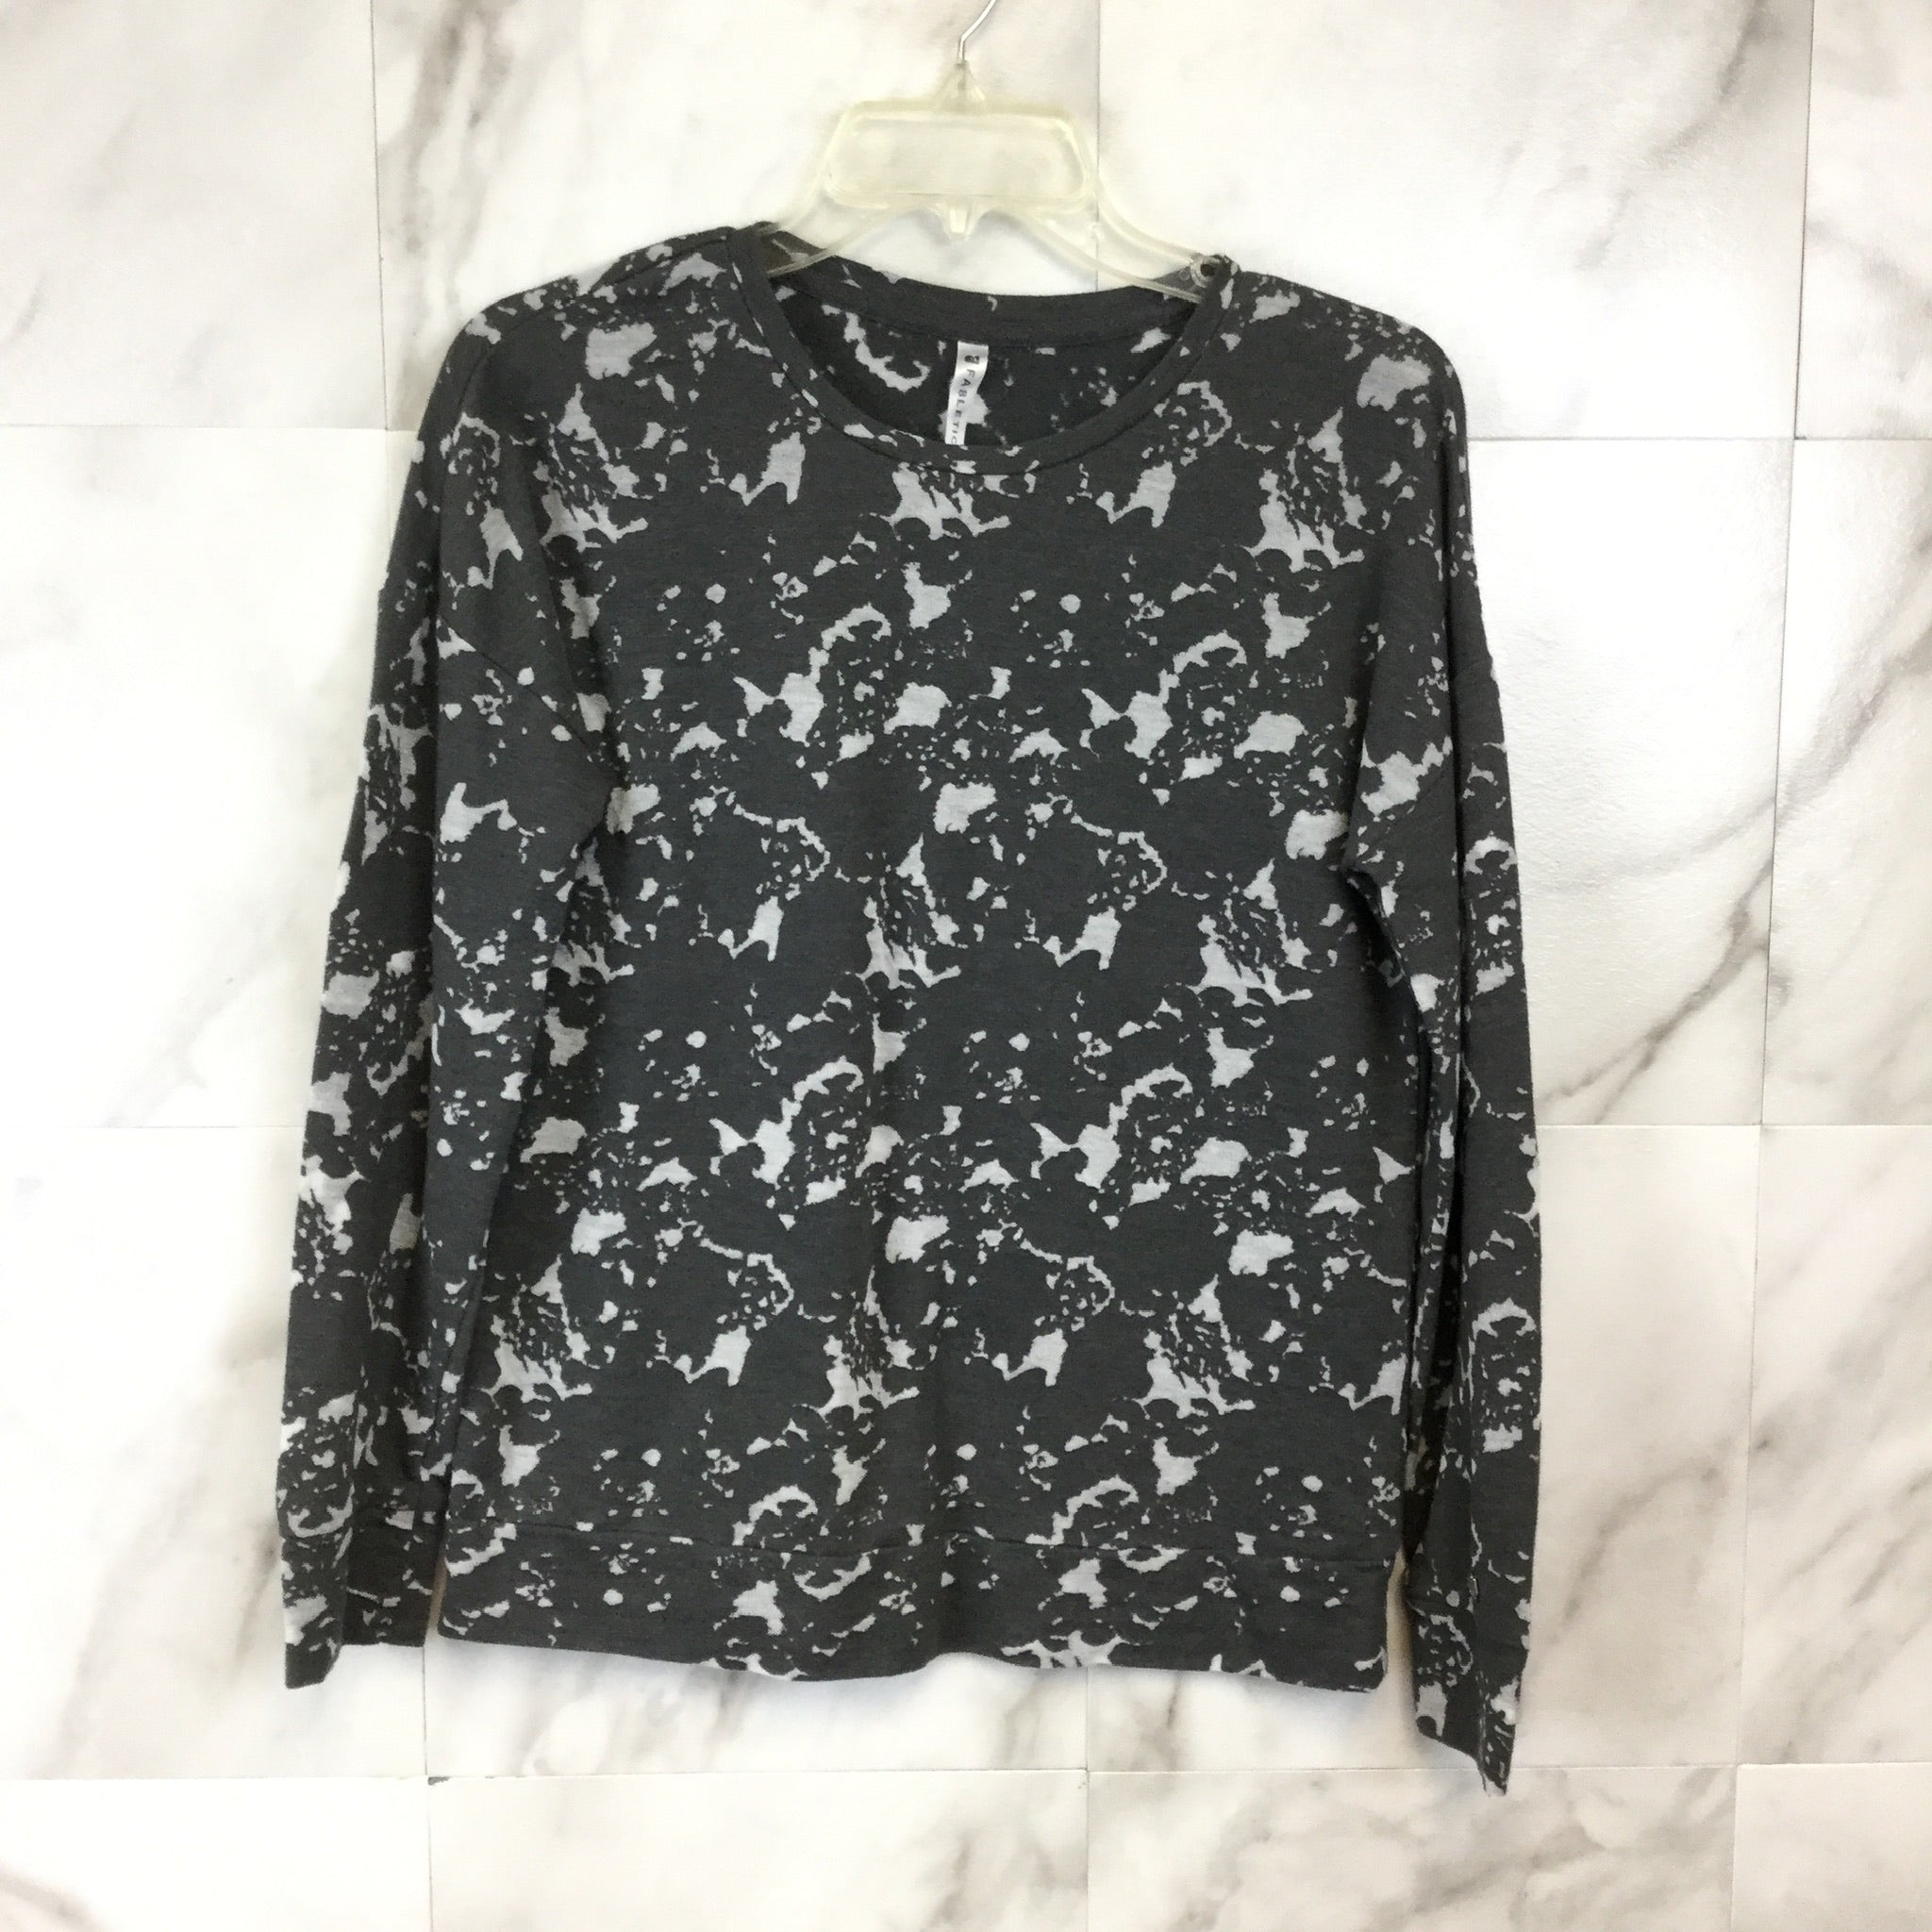 Fabletics Burnout Sweatshirt - Size S